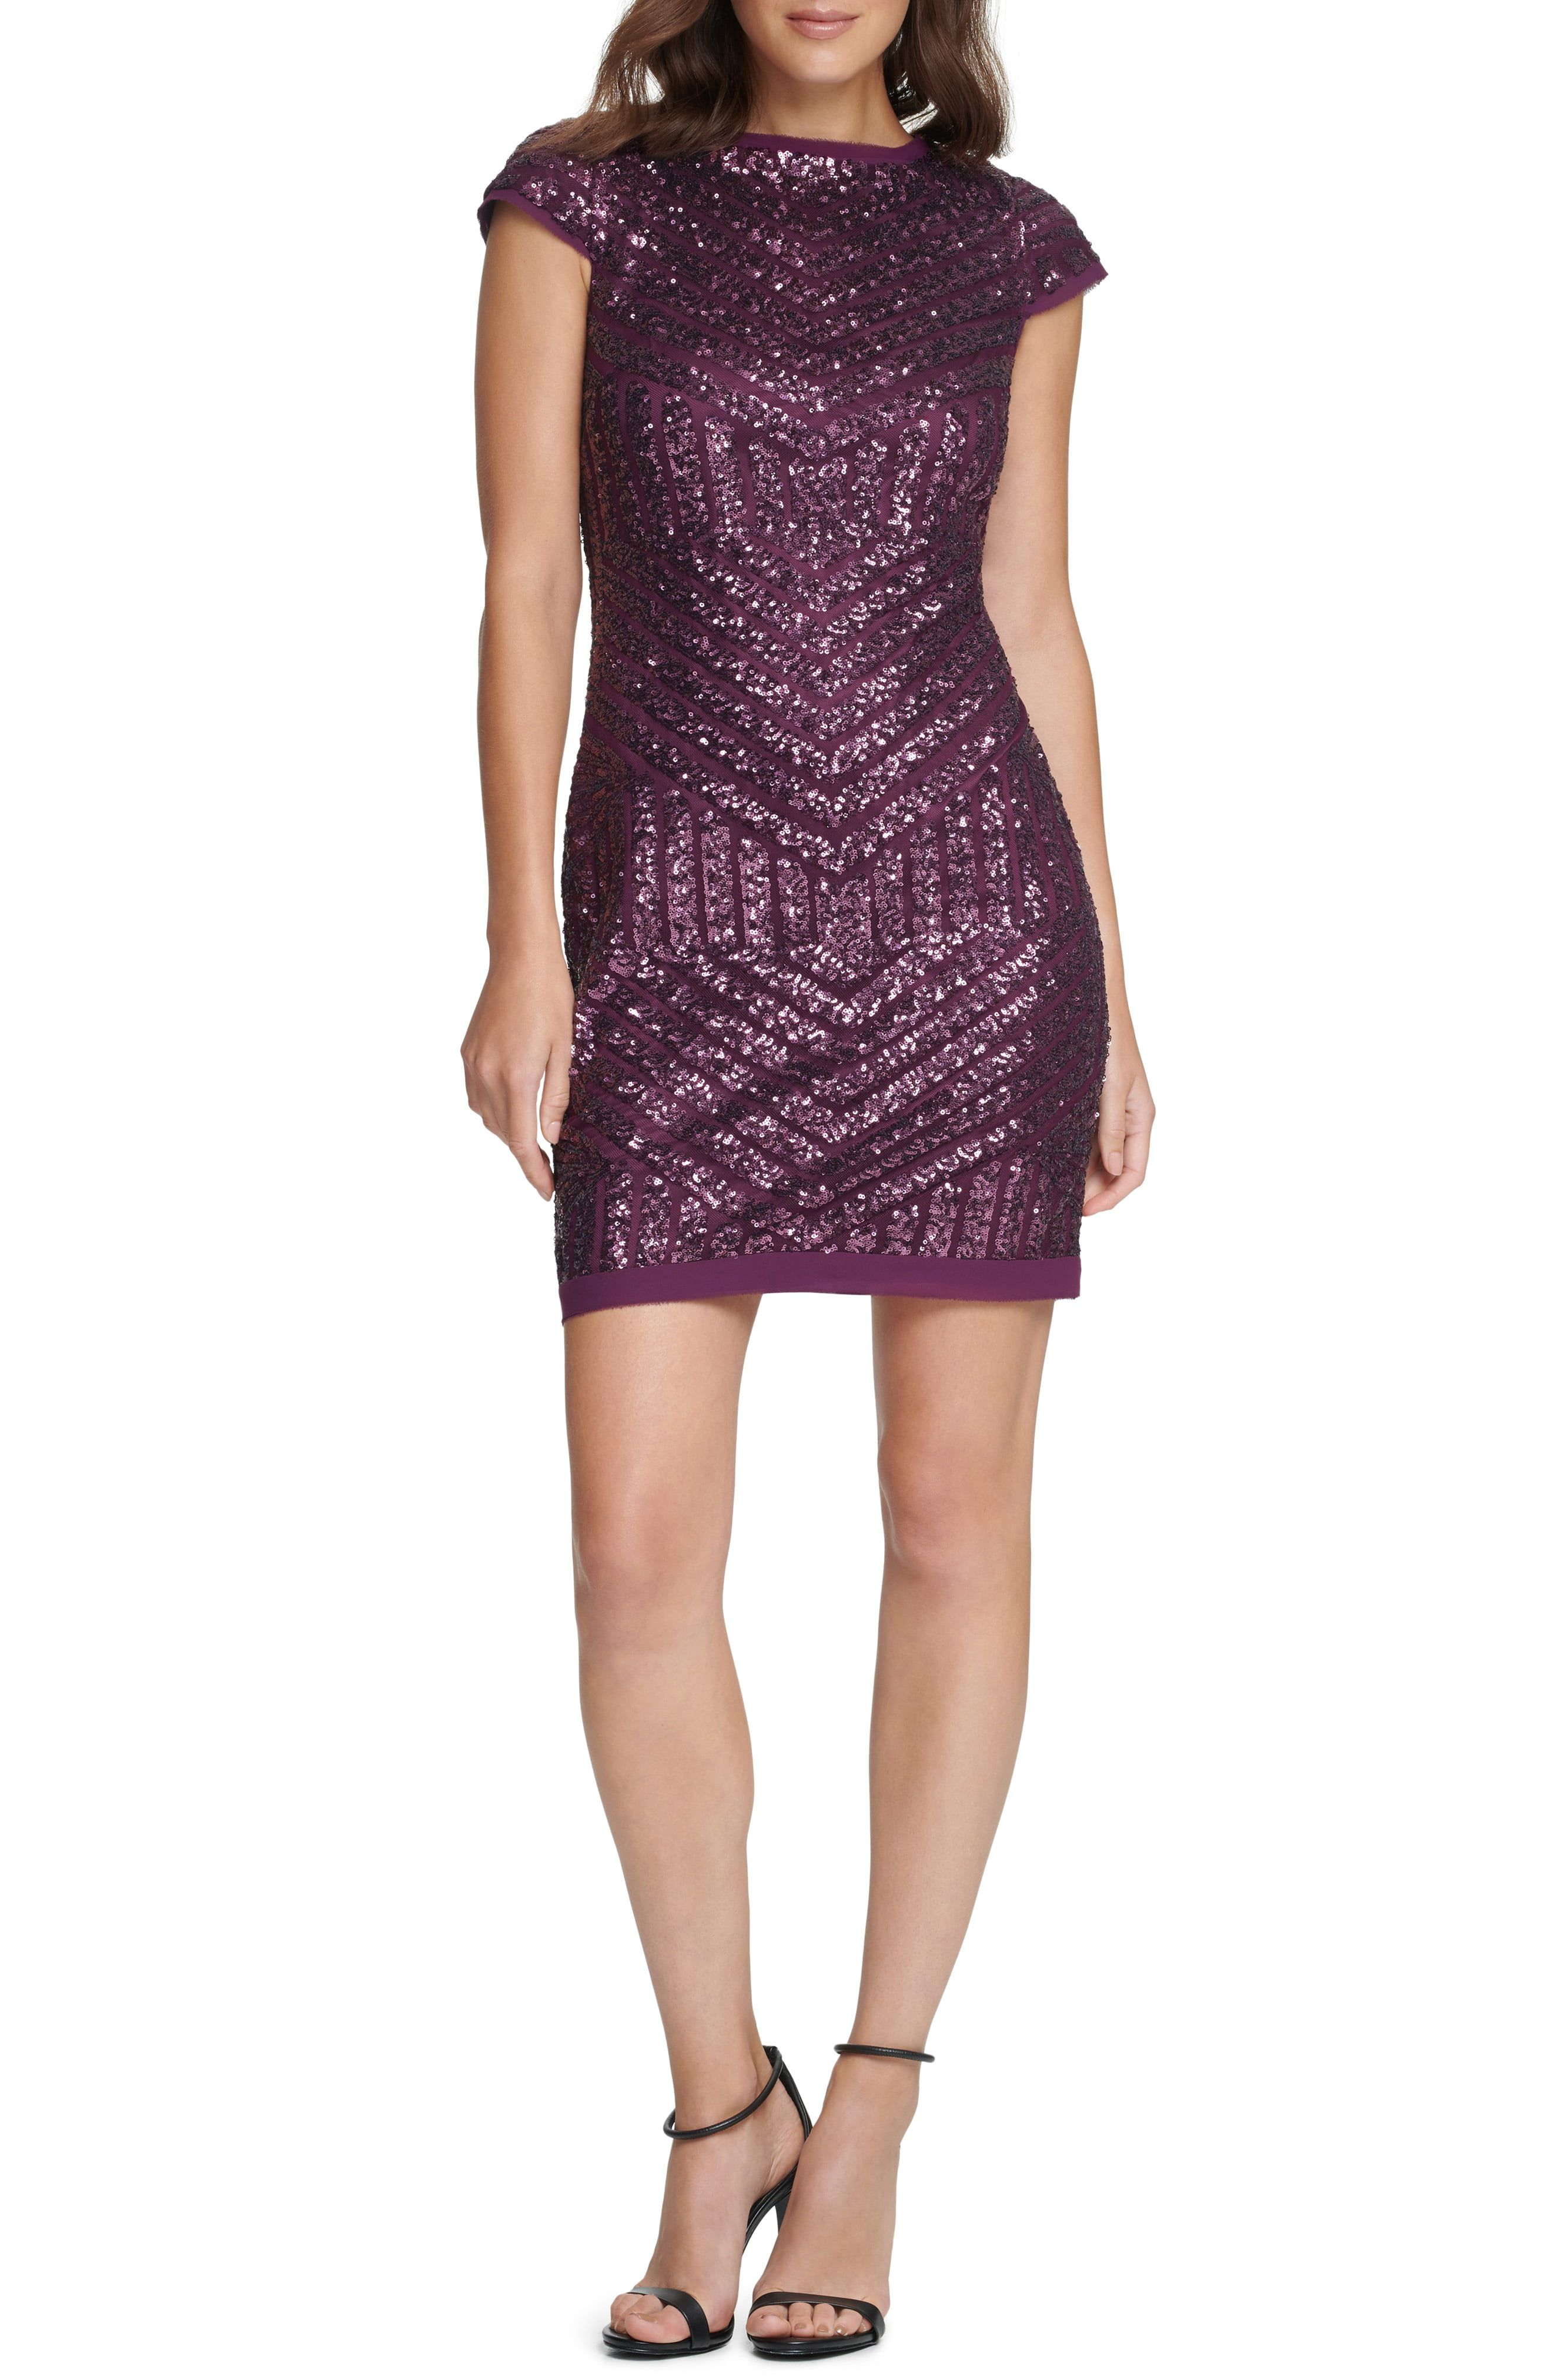 Vince Camuto Sequin Cap Sleeve Shift Cocktail Dress Nordstrom In 2021 Long Sleeve Chiffon Dress Long Sleeve Cocktail Dress Nordstrom Dresses [ 4048 x 2640 Pixel ]